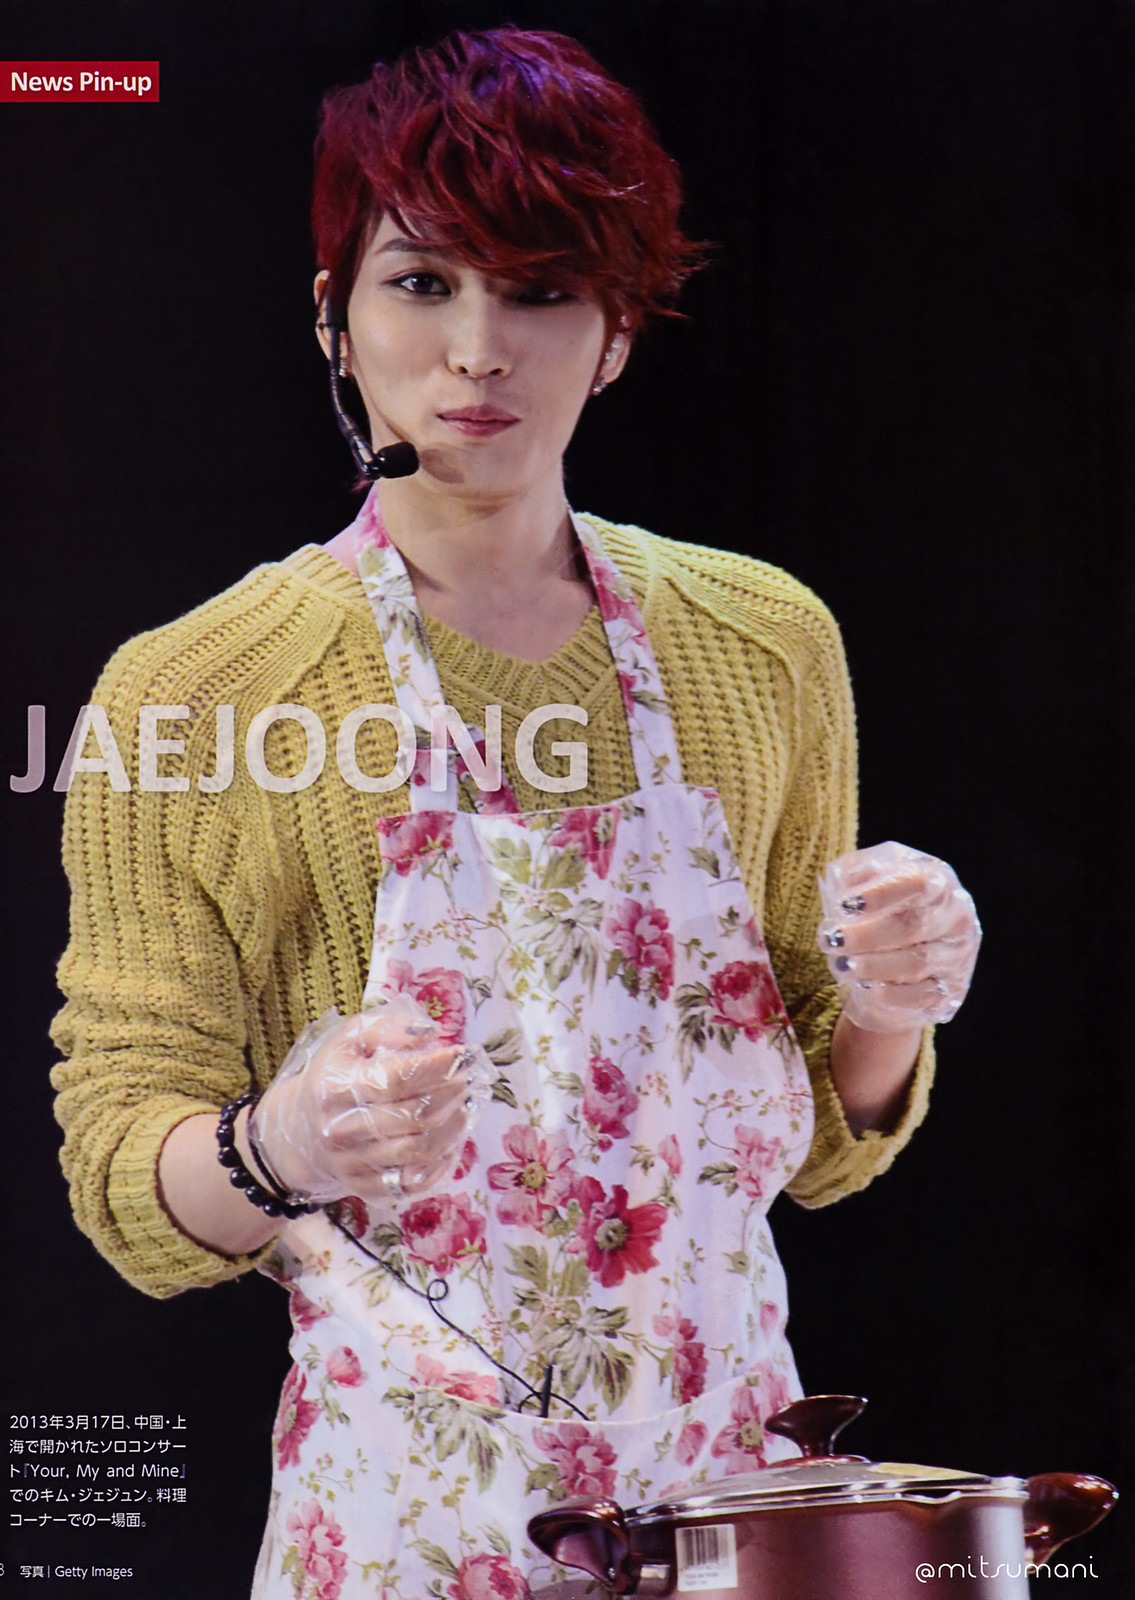 Google theme jaejoong -  Hq Scans 130417 Kim Jaejoong Featured In Japanese Magazine Boda April Issue Part 2